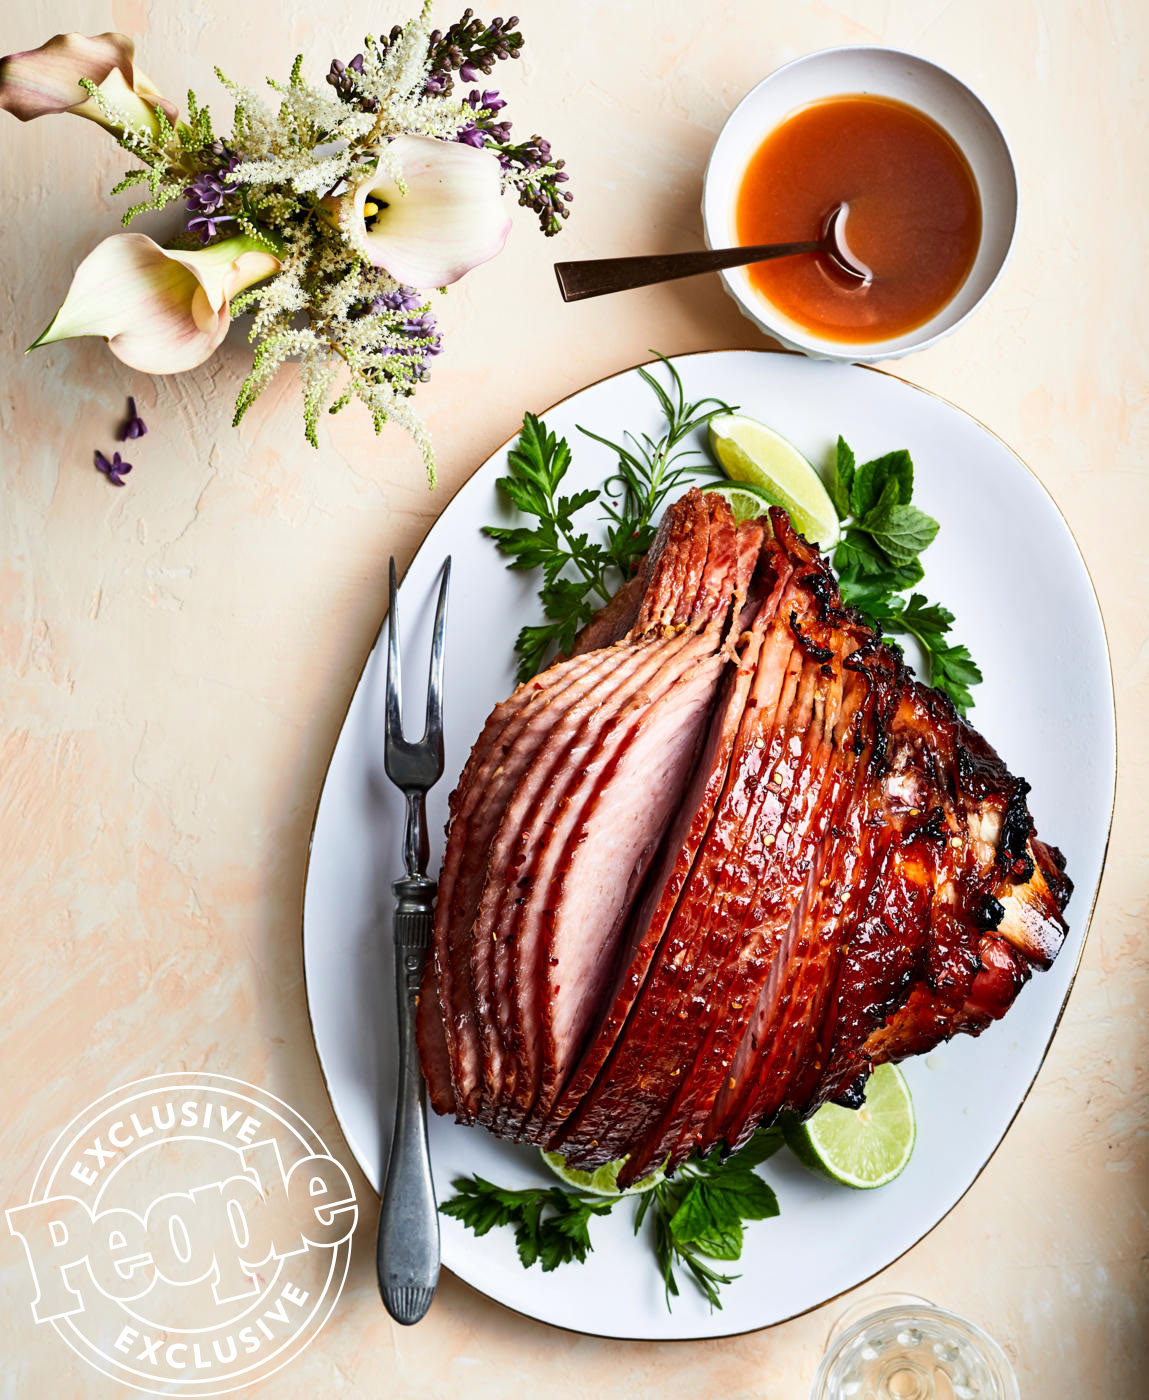 Geoffrey Zakarian's Honey-Ginger Glazed Ham